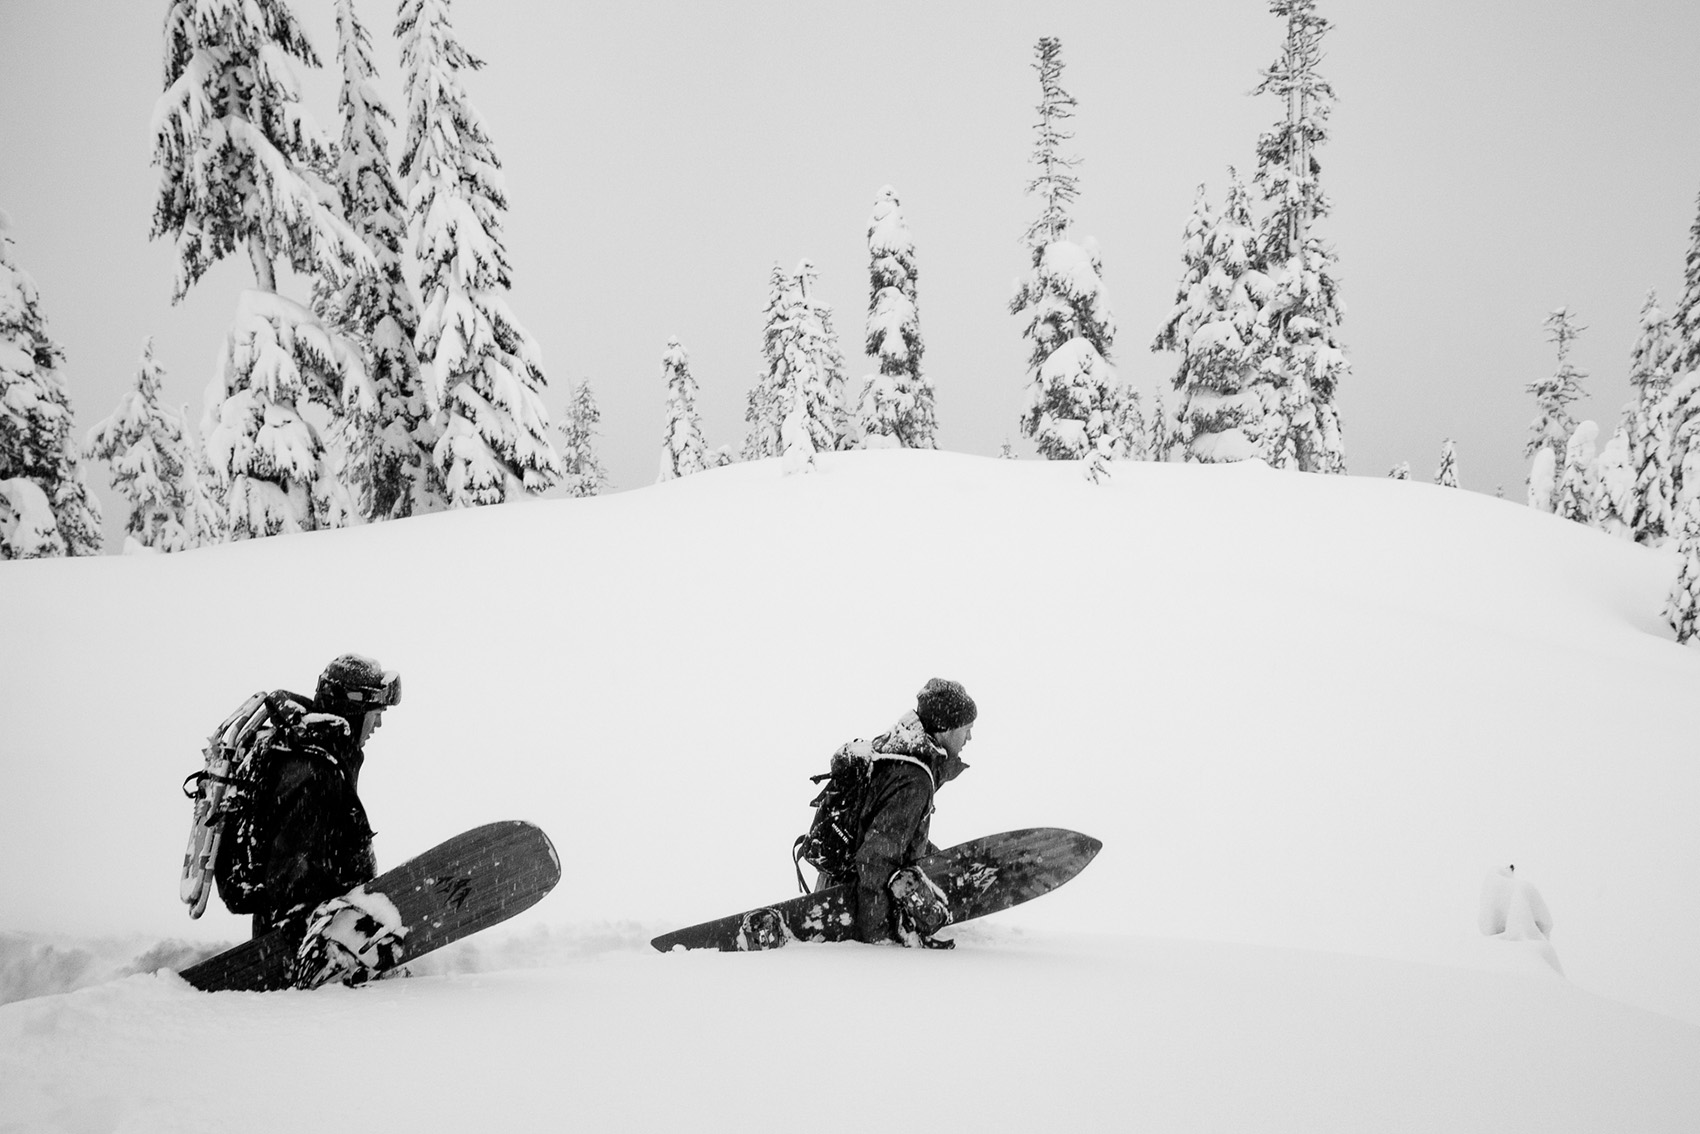 Two snowboarders in deep powder at Mount Baker, Washington.